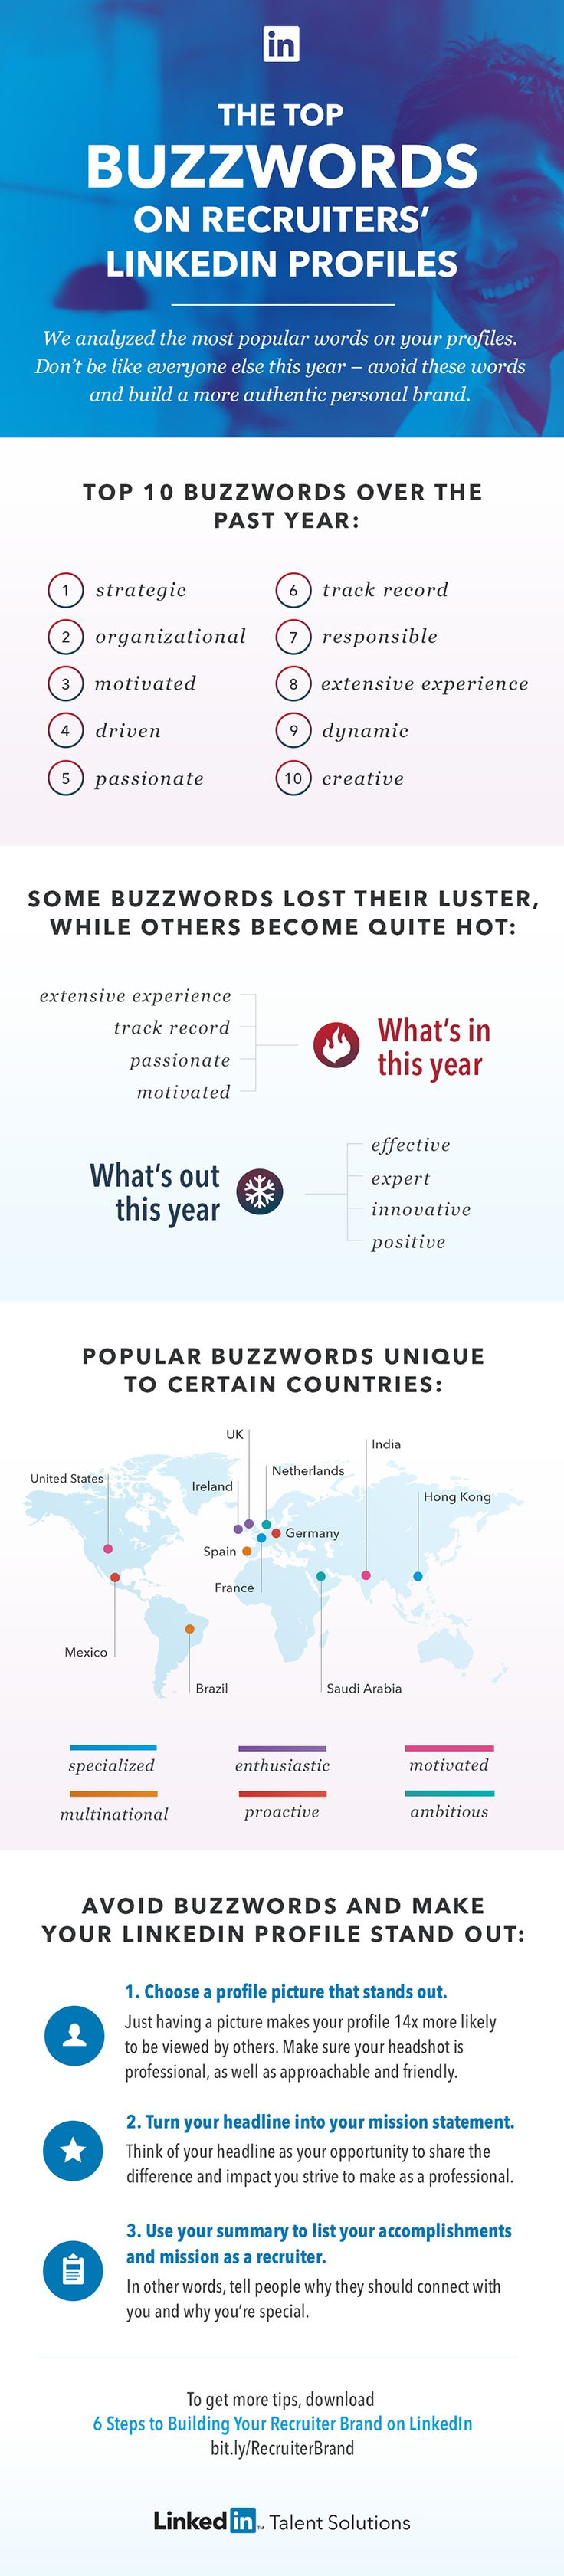 Top 10 Buzzwords Recruiters Overused In 2014. Find This Pin And More On Interview  Advice ...